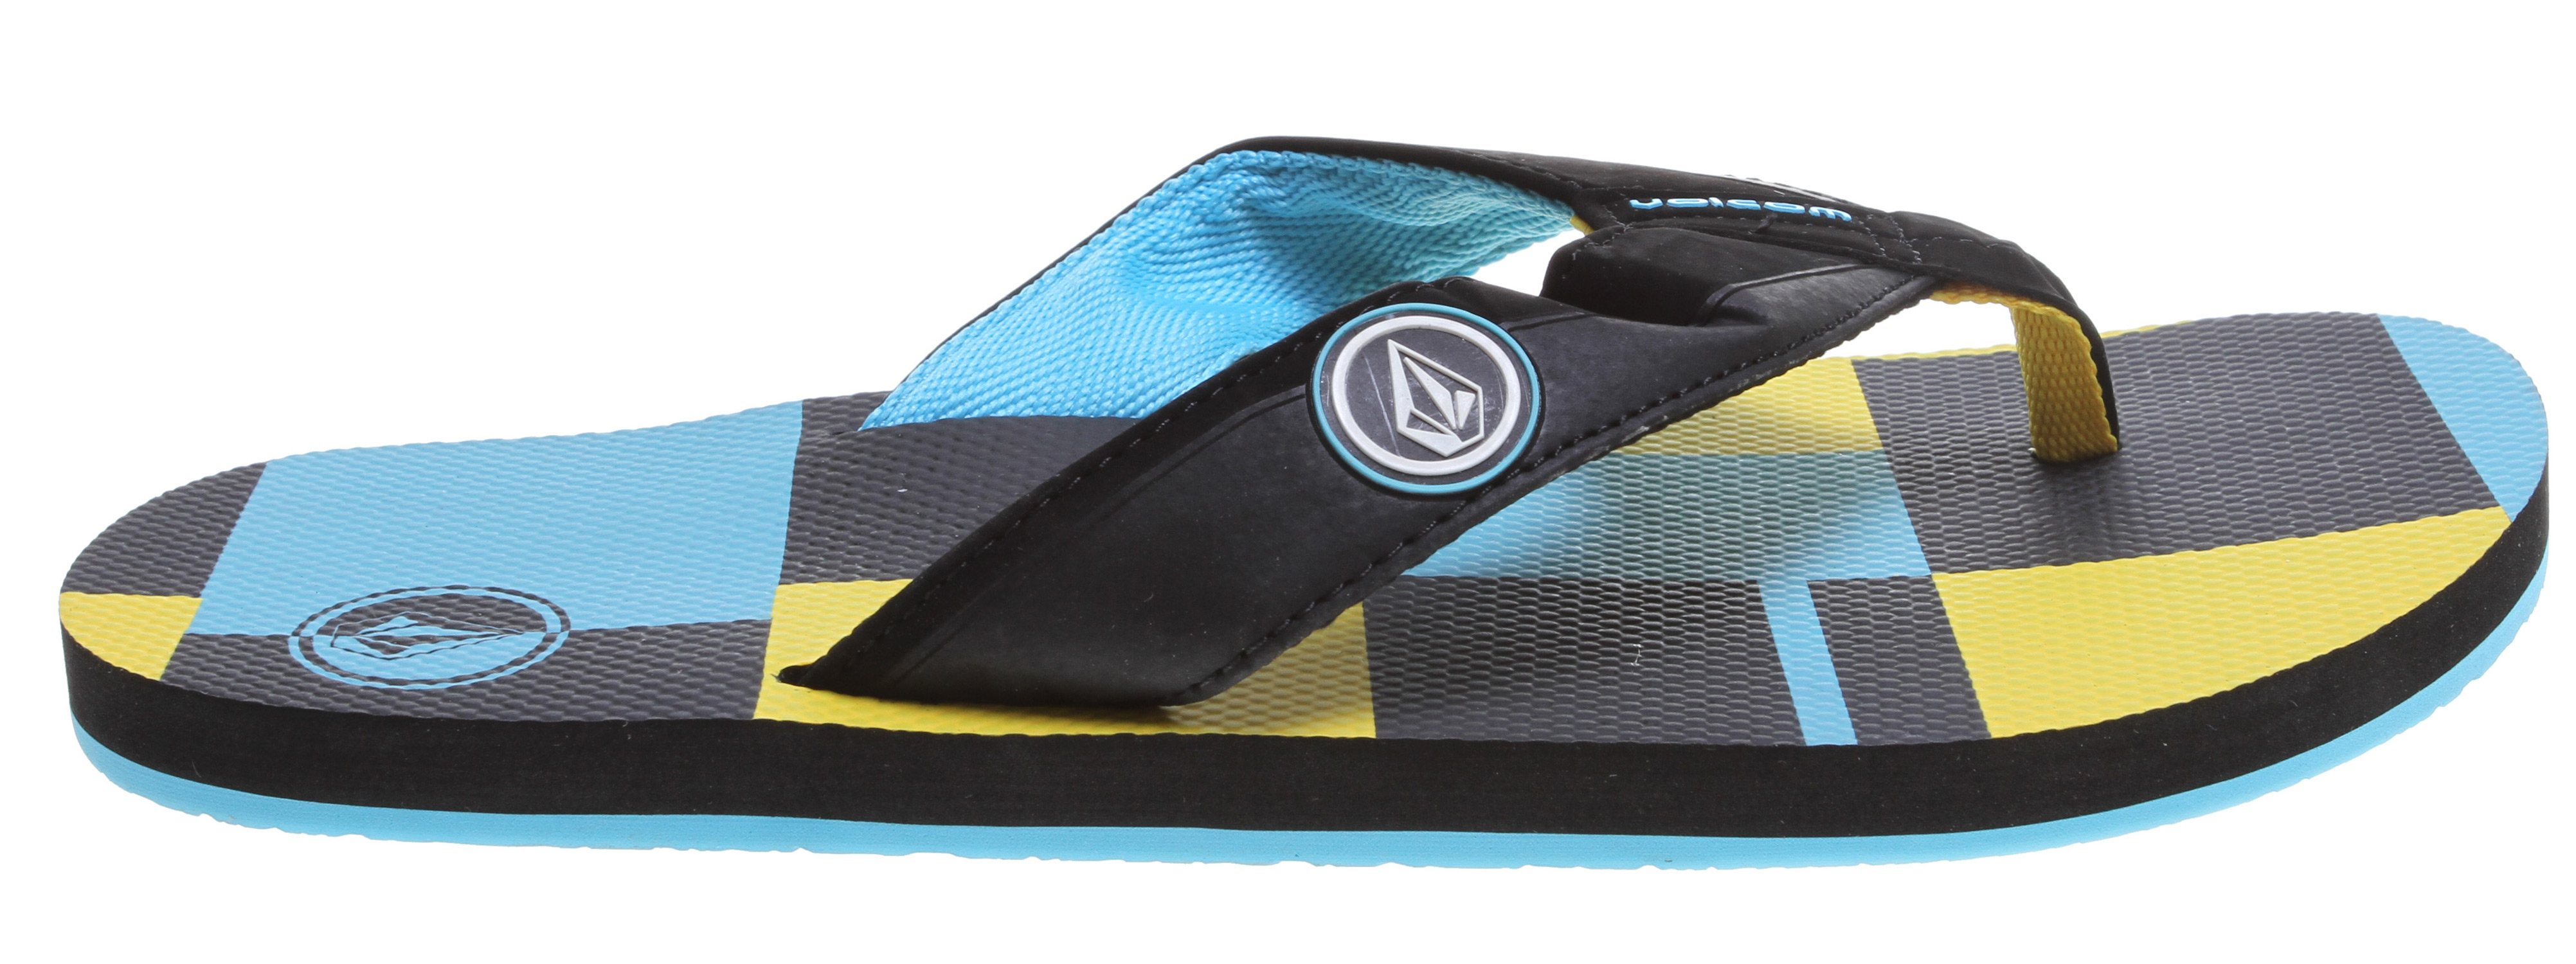 Surf Key Features of the Volcom Vocation Sandals: Synthetic Nubuck strap with high-density print logo, stitching details and webbing lining Textured, anatomical contour molded, dual density EVA top sole with arch support High density EVA outsole - $16.95